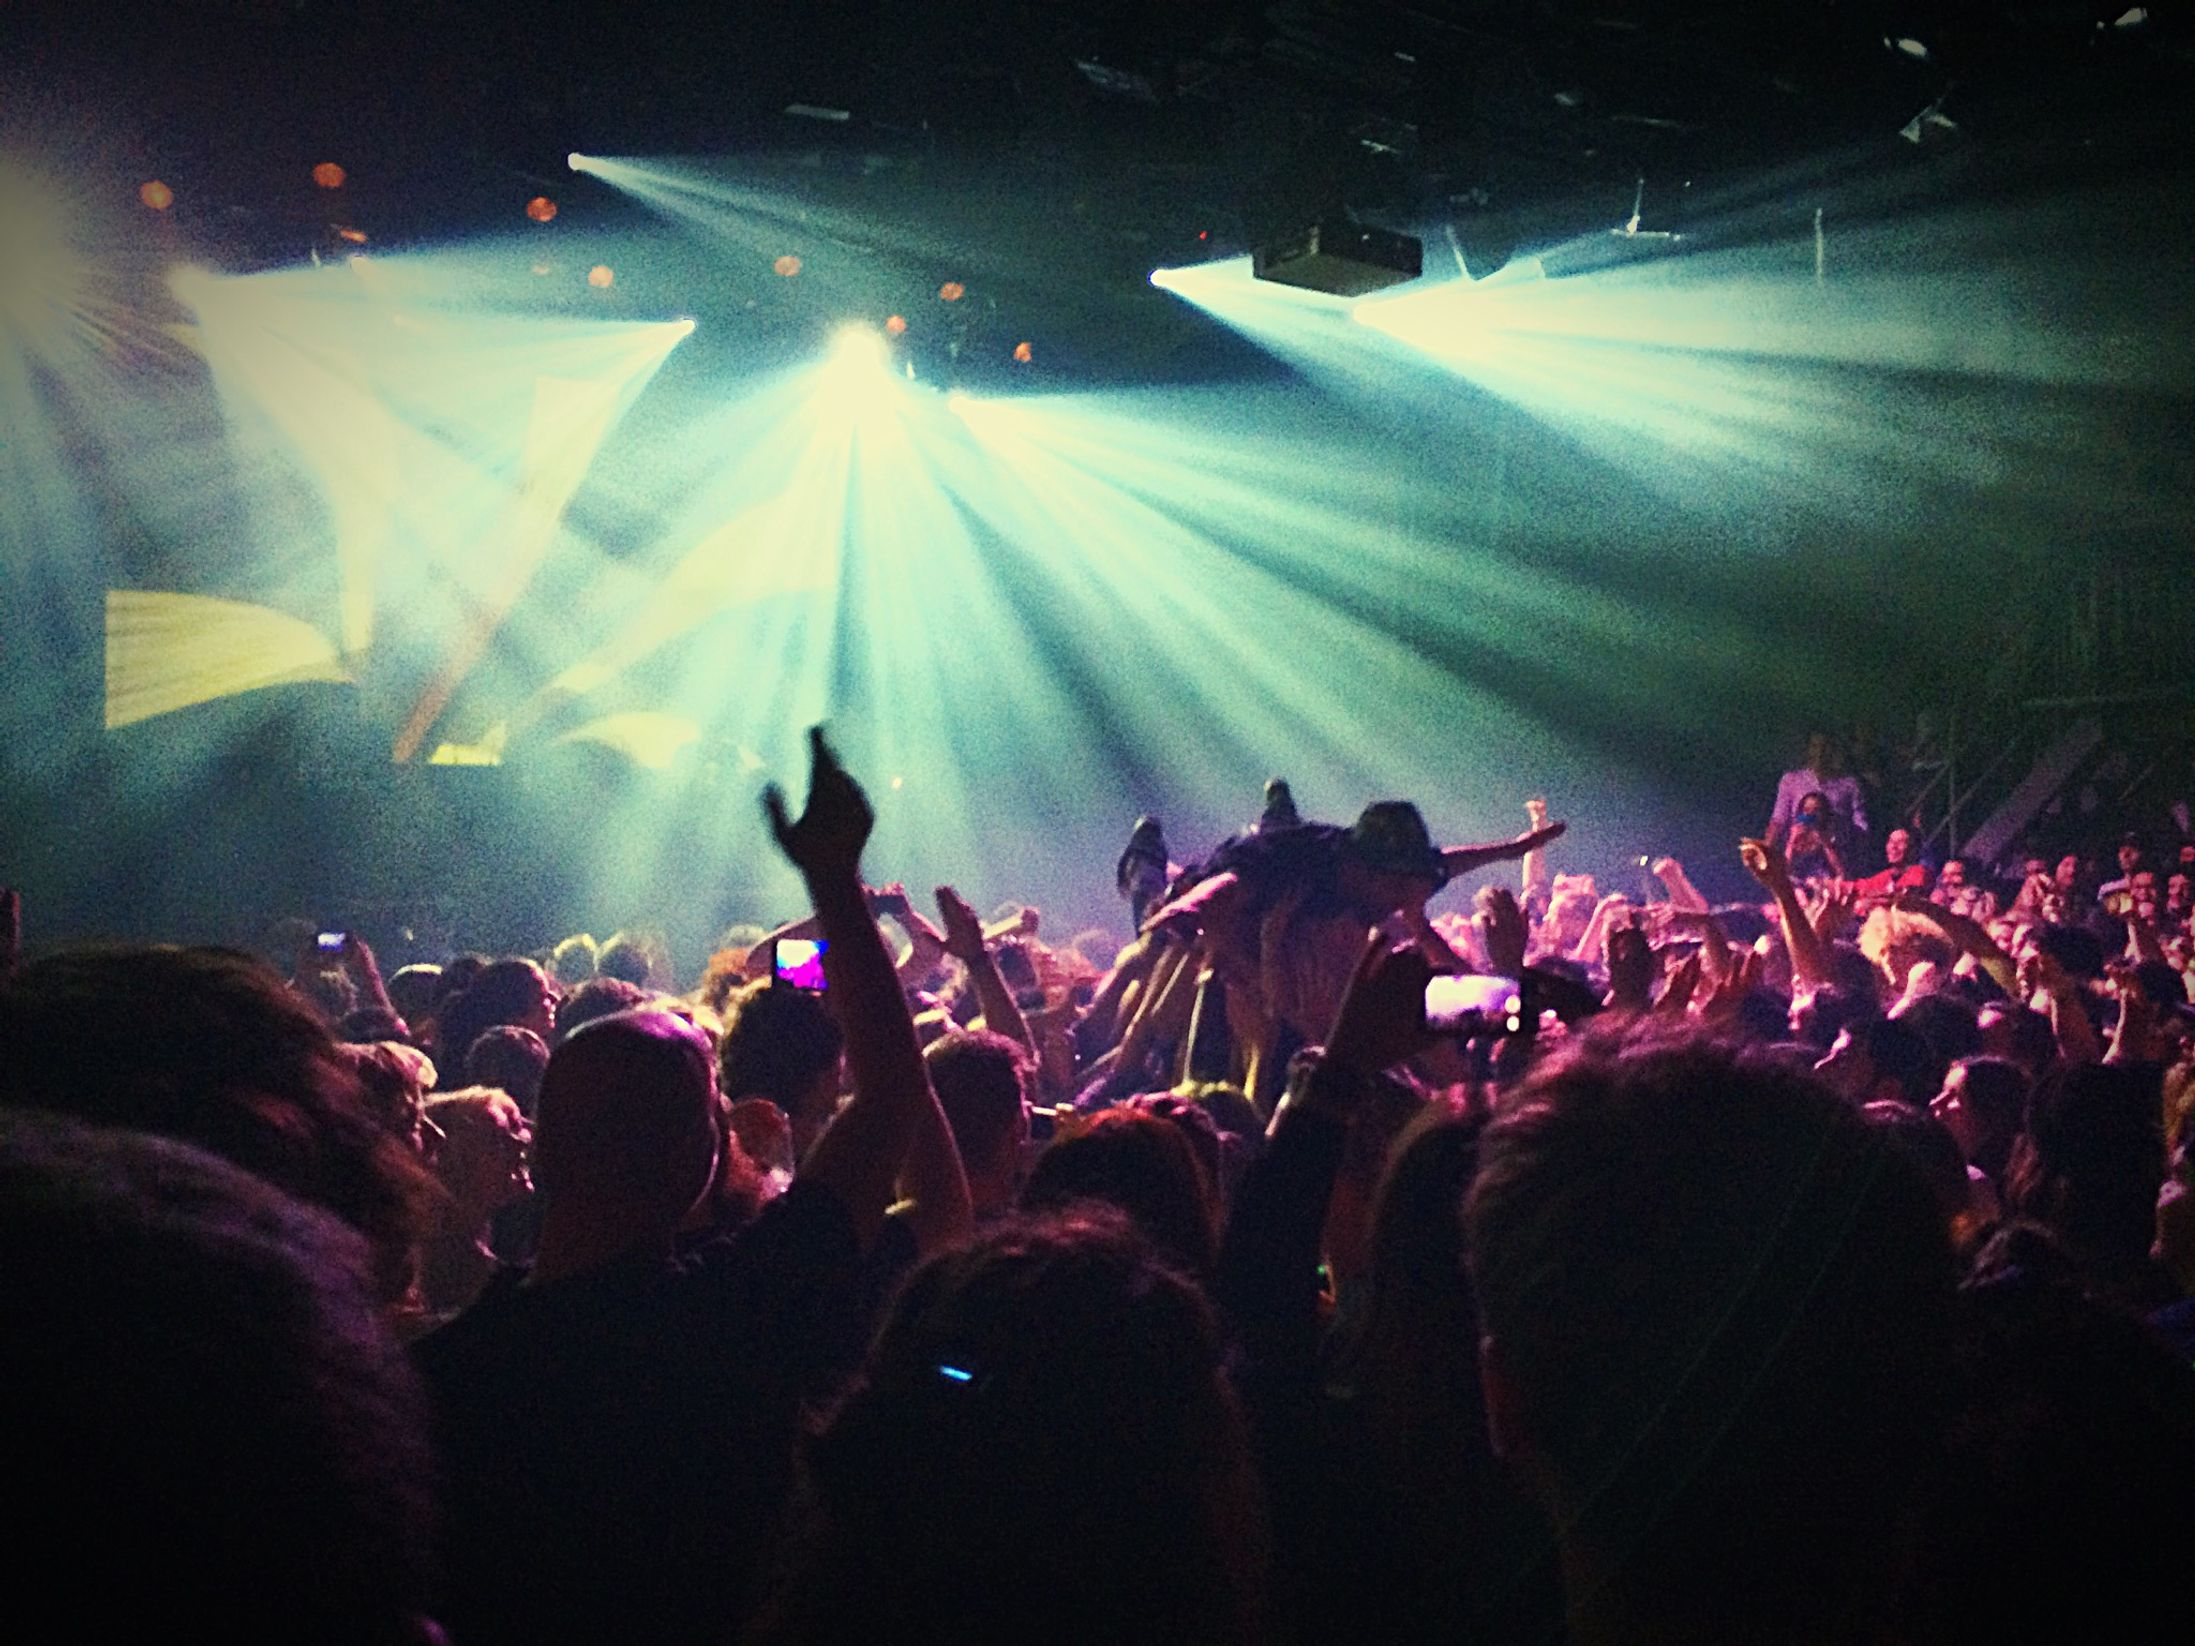 People dancing and crowd surfing in Amsterdam - one of the best party cities in Europe